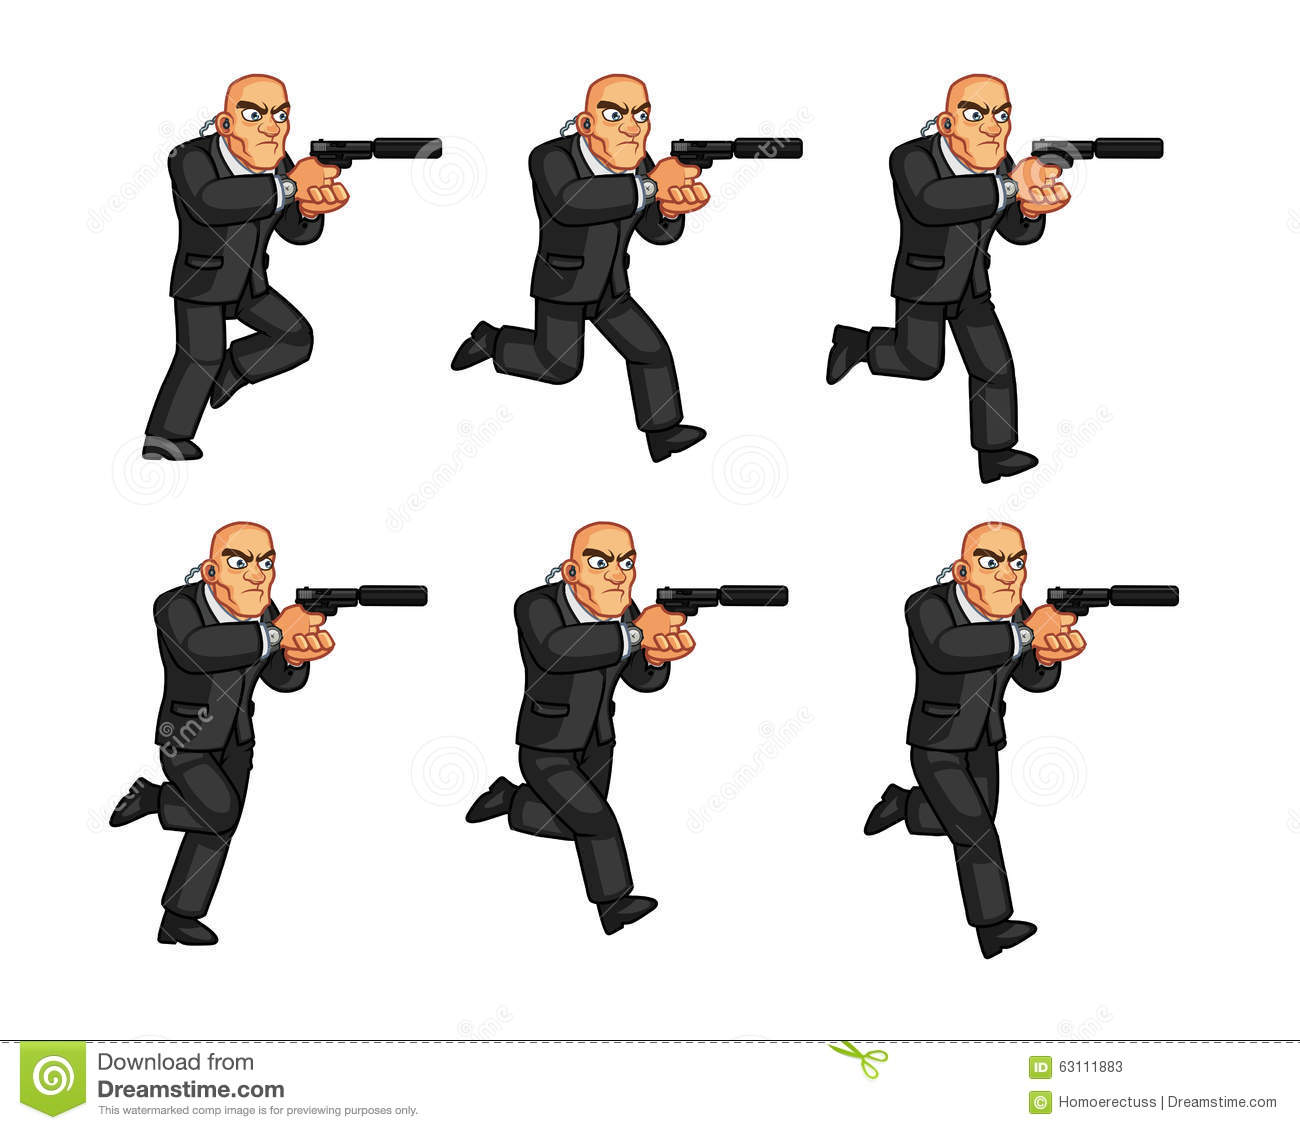 Clipart 240602 further Stock Illustration Body Guard Animation Sprite Vector Illustration Bald Man Tuxedo As Sequence Game Project Image63111883 also SKU K 4163 in addition Scaffolding In New Zealand besides Creative Mobile Phone Model 248508. on stick figure on fire